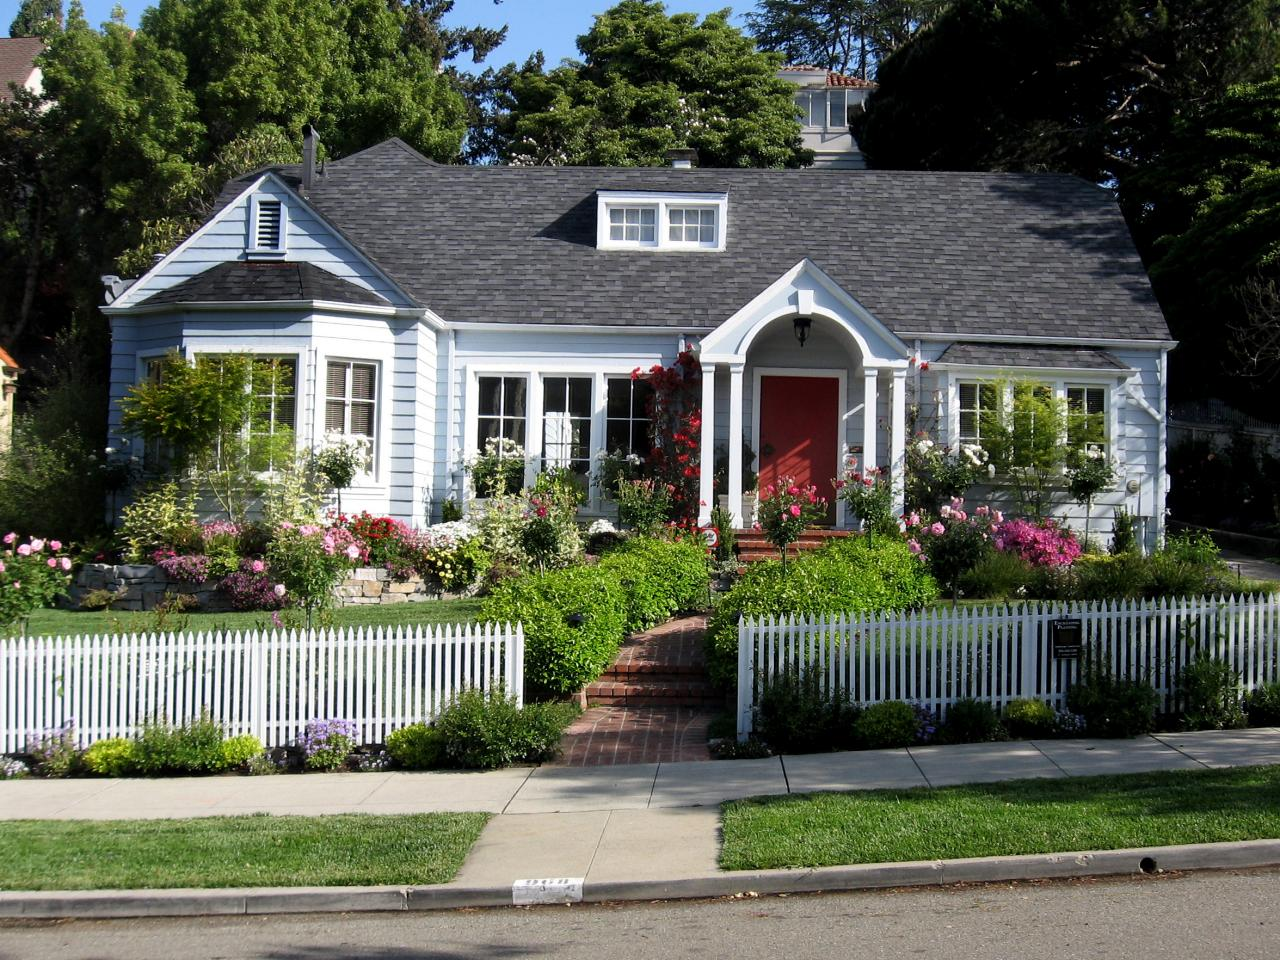 Superb Cottage Landscaping Ideas For Front Yard Part - 2: Landscaping Tips That Can Help Sell Your Home